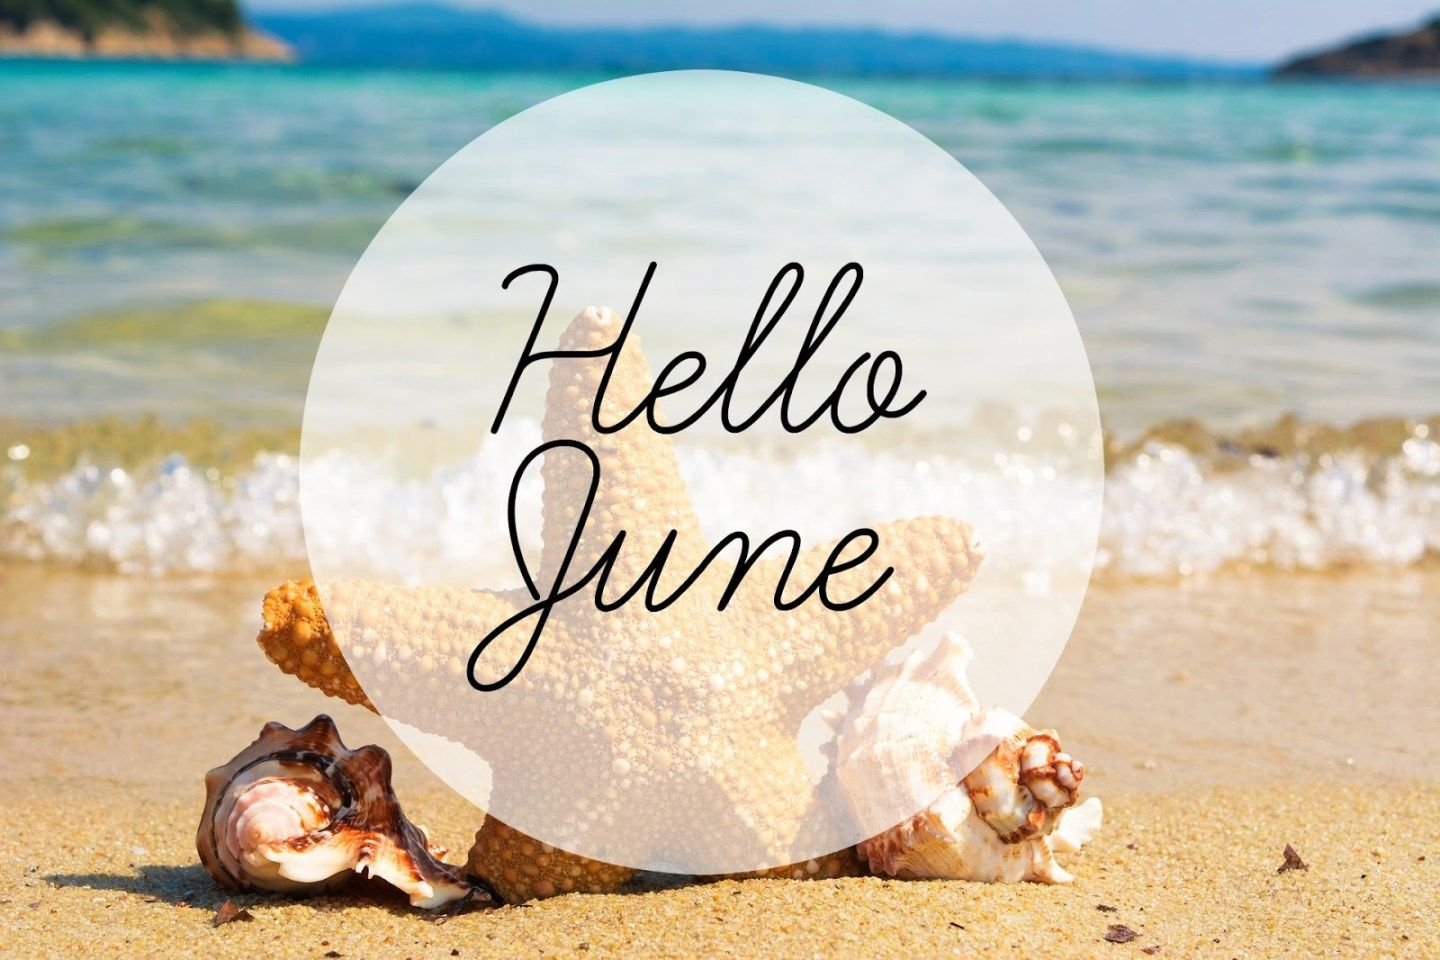 Hello June. Beach picture pictures photos